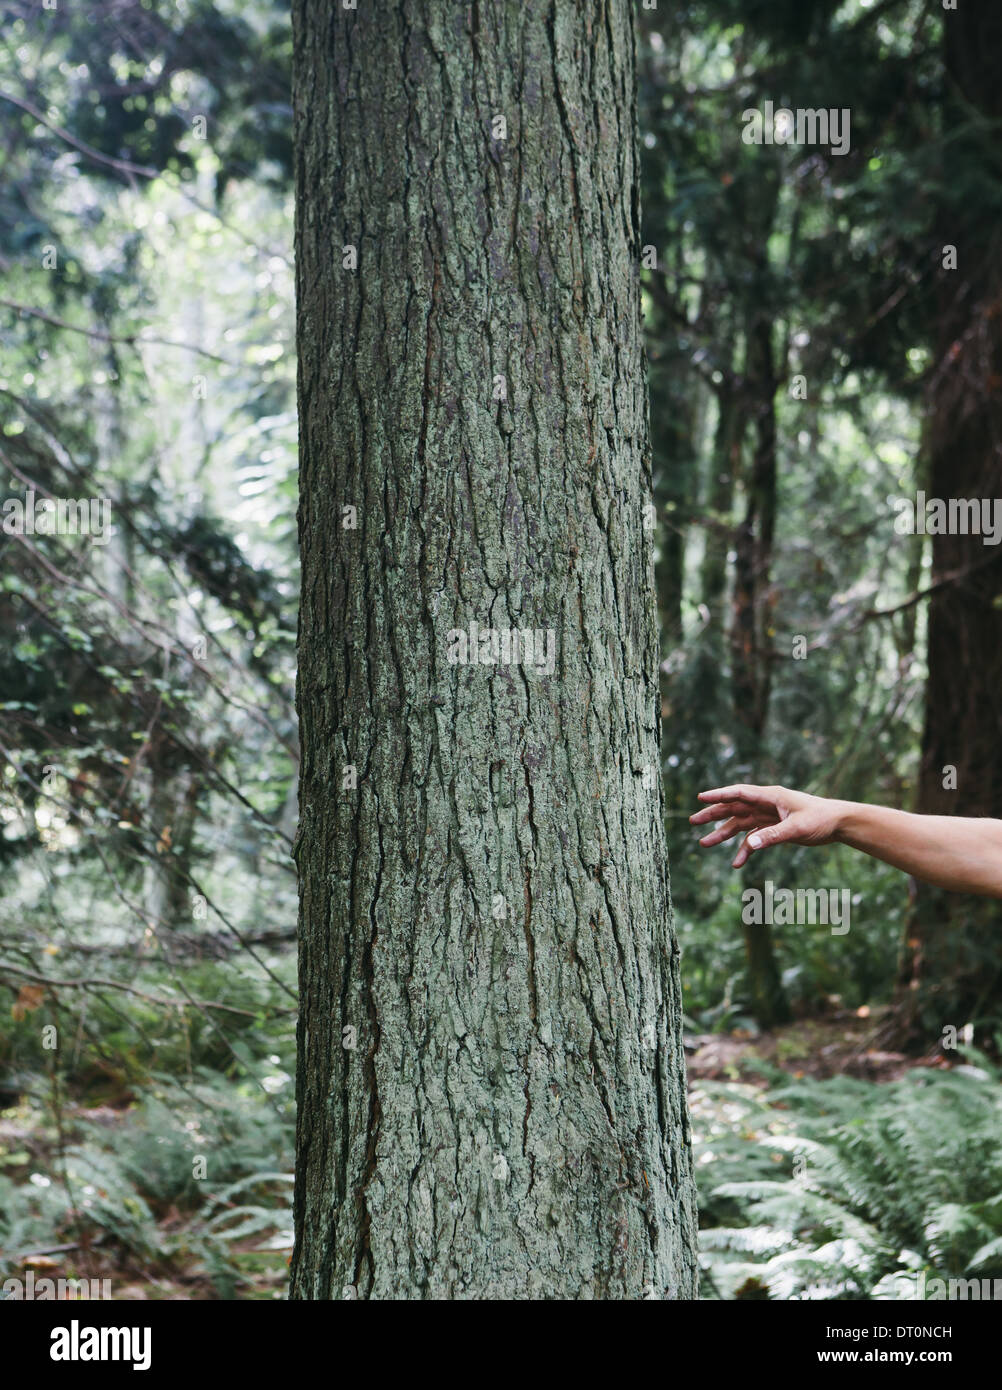 Seattle Washington USA Man reaching for tree in lush green forest - Stock Image